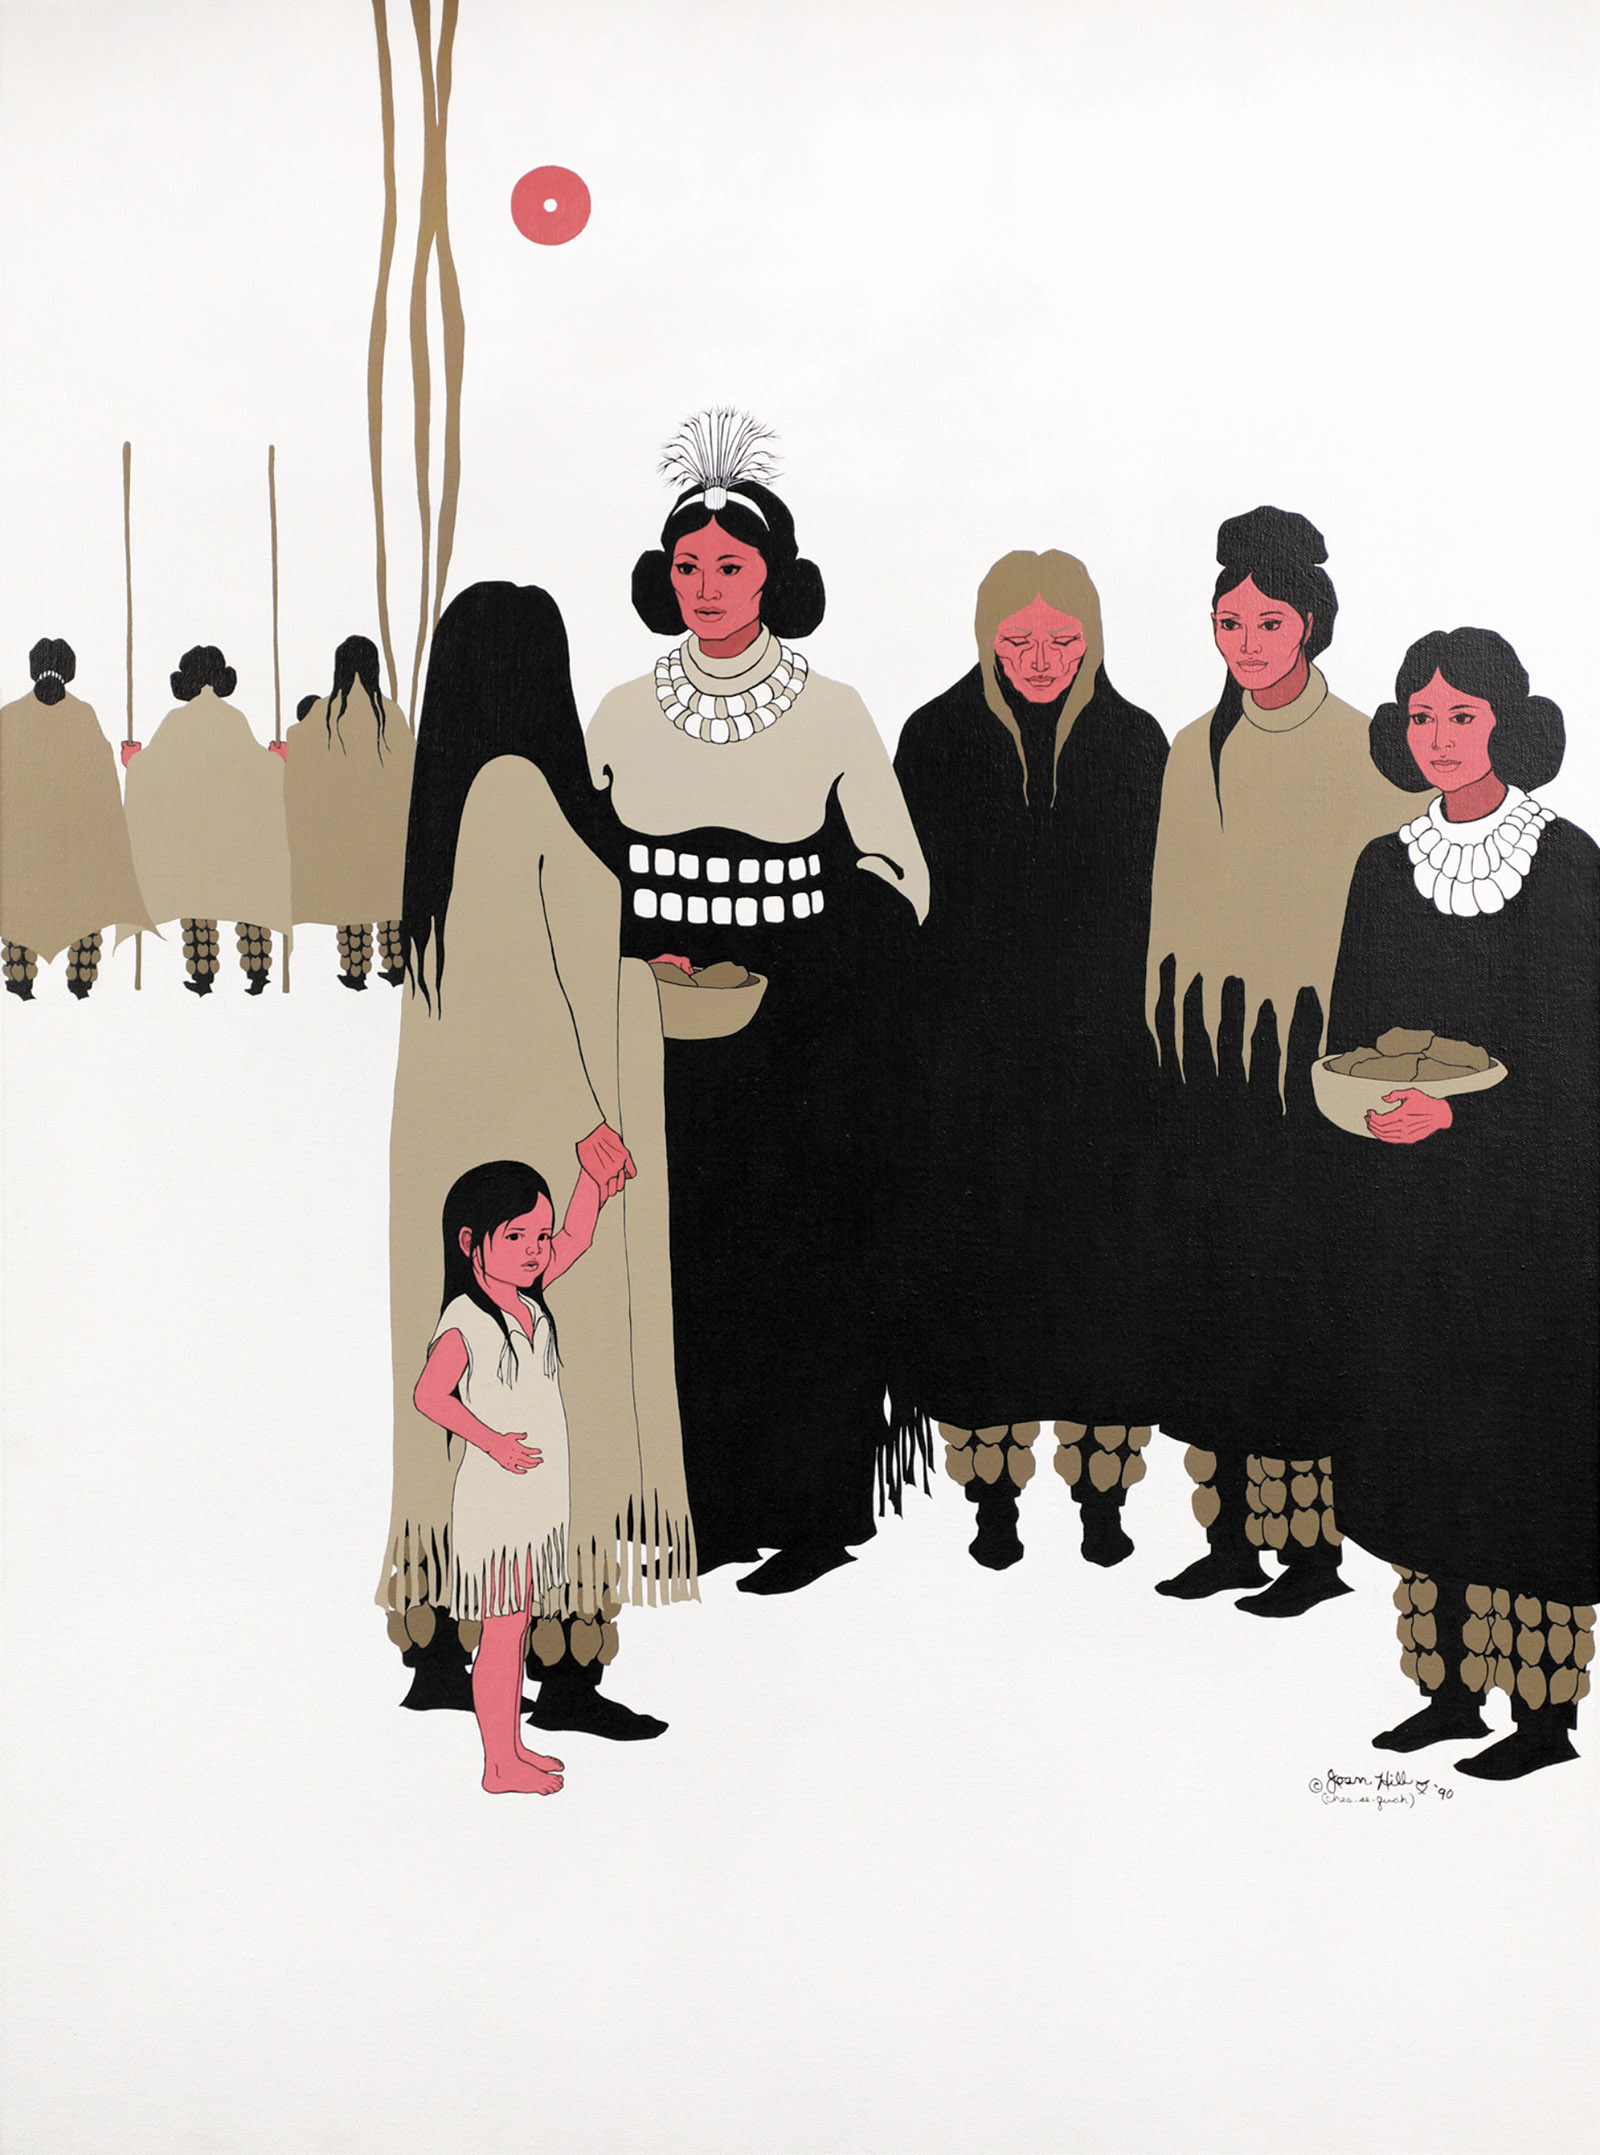 Women's Voices at the Council, artwork by Joan Hill